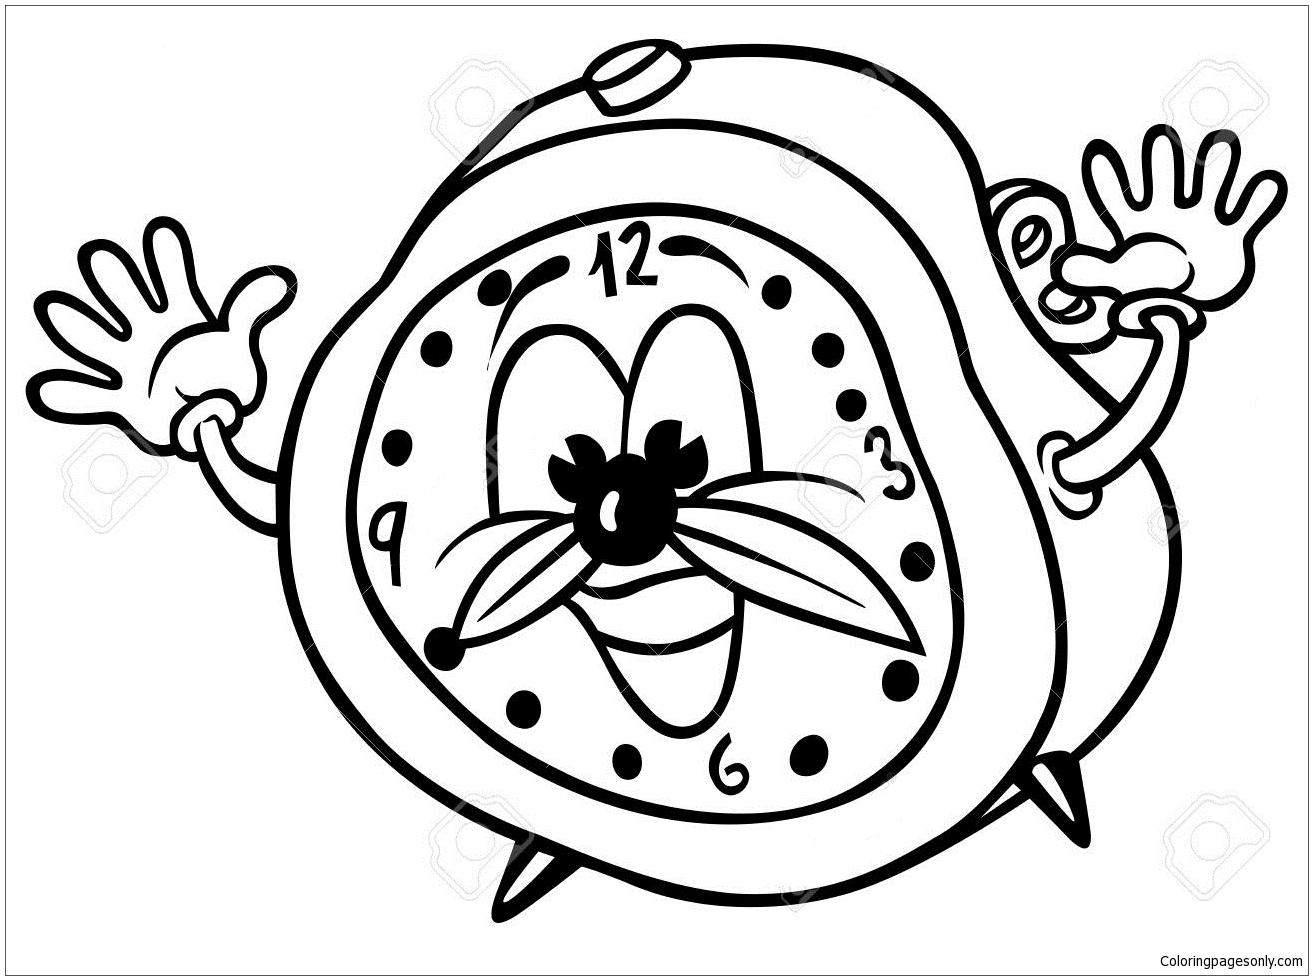 coloring picture of clock antique clock coloring pages best place to color picture clock coloring of